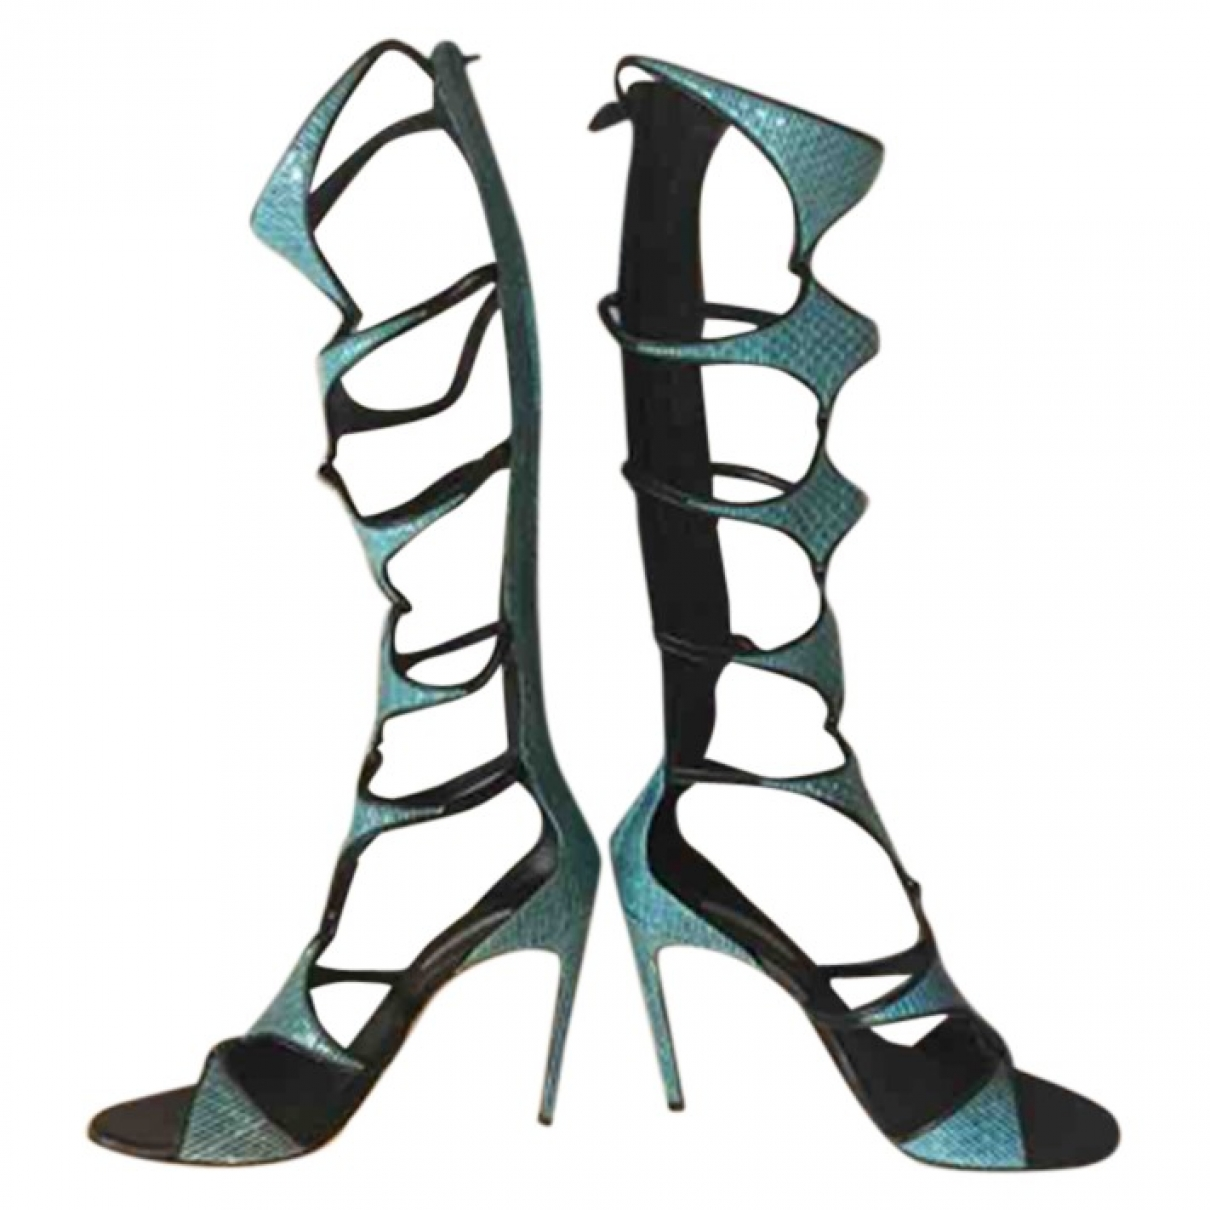 Casadei \N Turquoise Leather Sandals for Women 37 IT